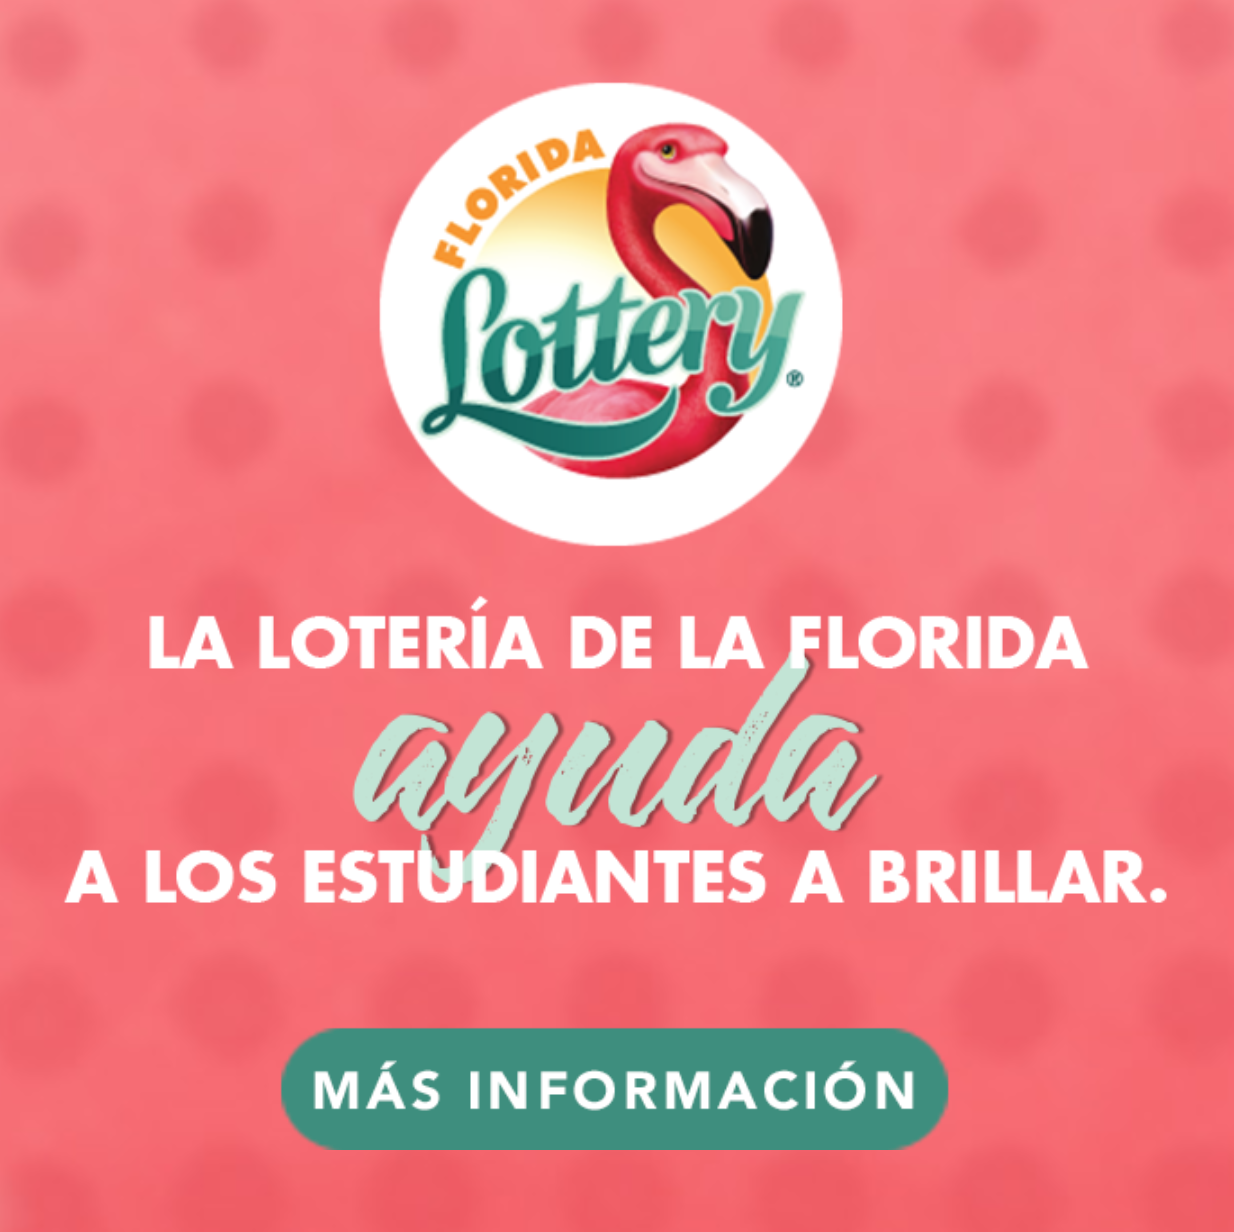 Florida Lottery (Education)